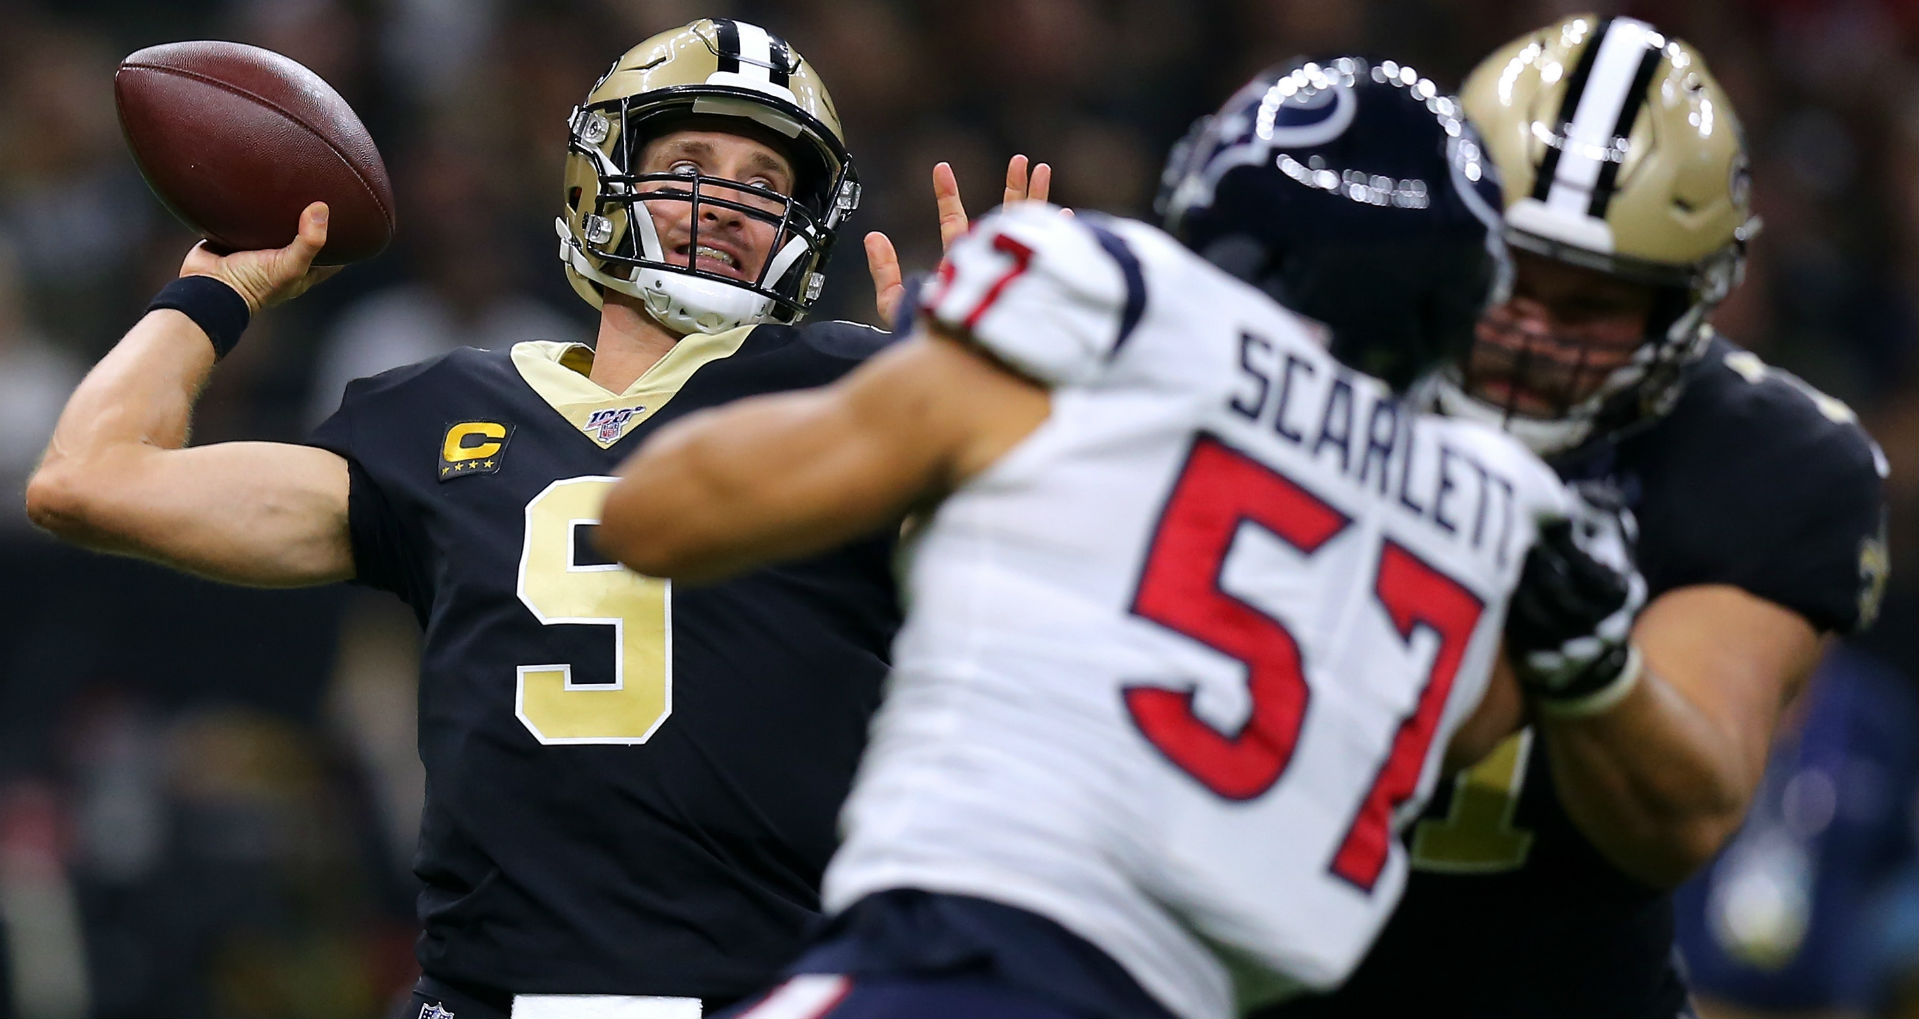 Drew Brees passes Tom Brady for second most touchdown passes in NFL history